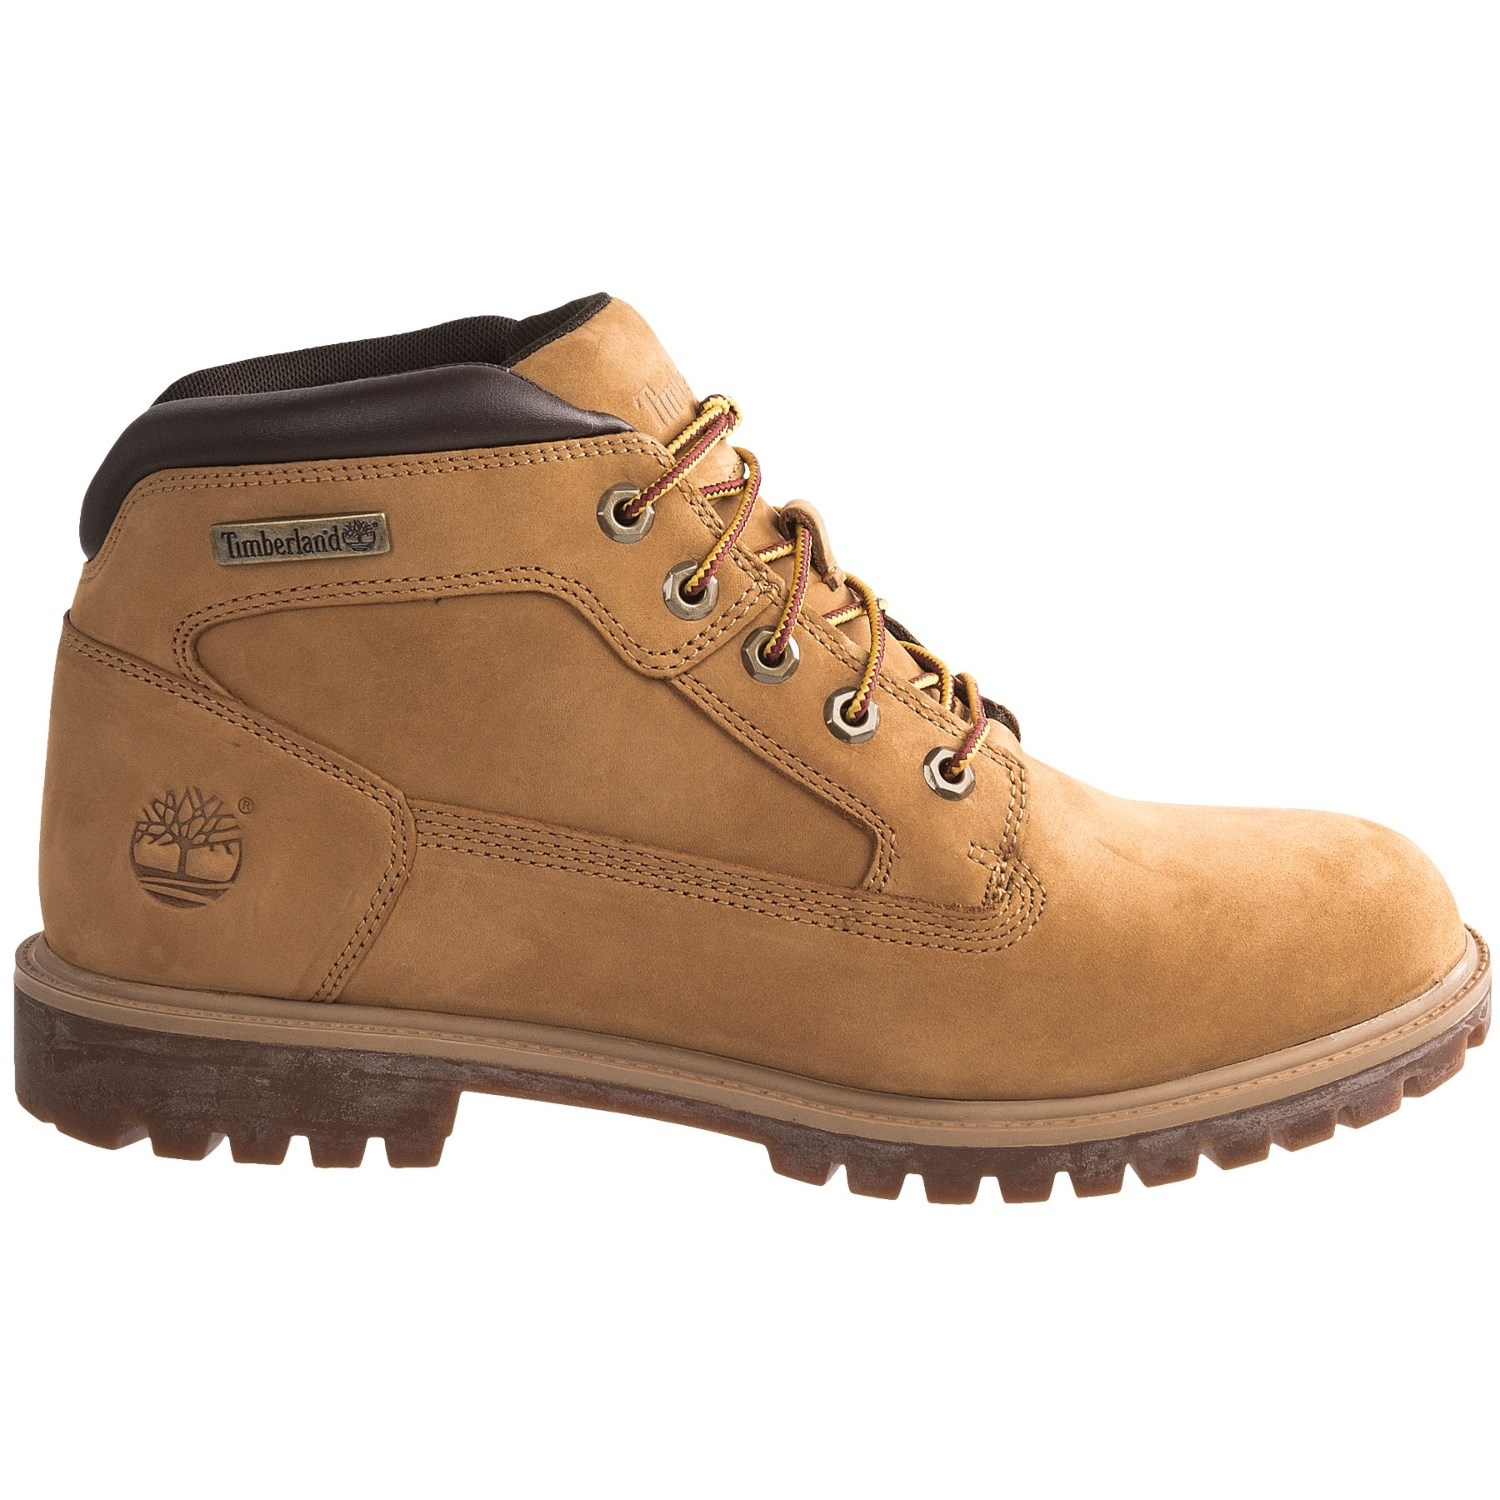 7c96nnzz Discount timberland men's newmarket camp leather hiking boot